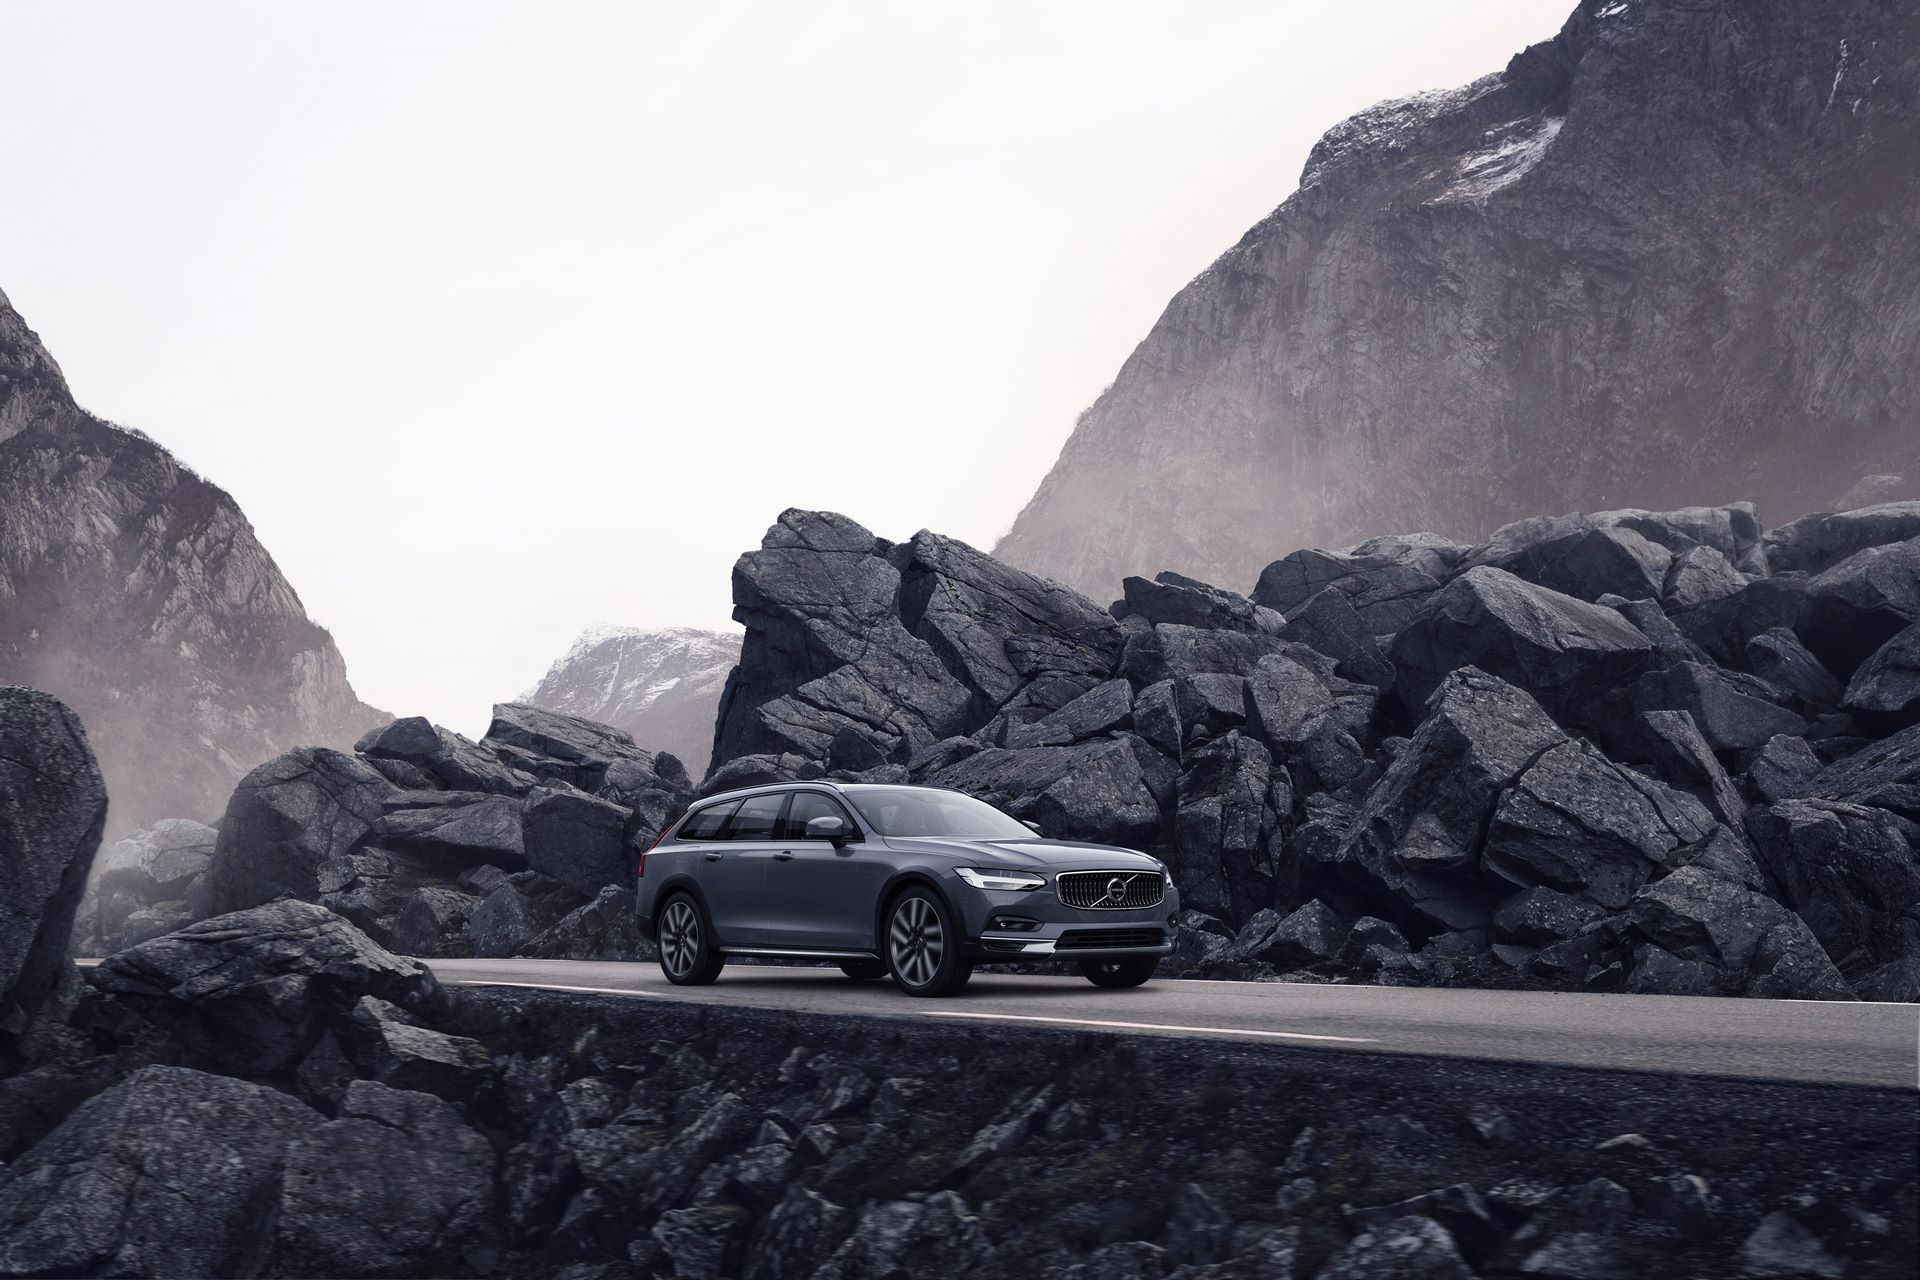 The refreshed Volvo V90 B6 AWD Cross Country